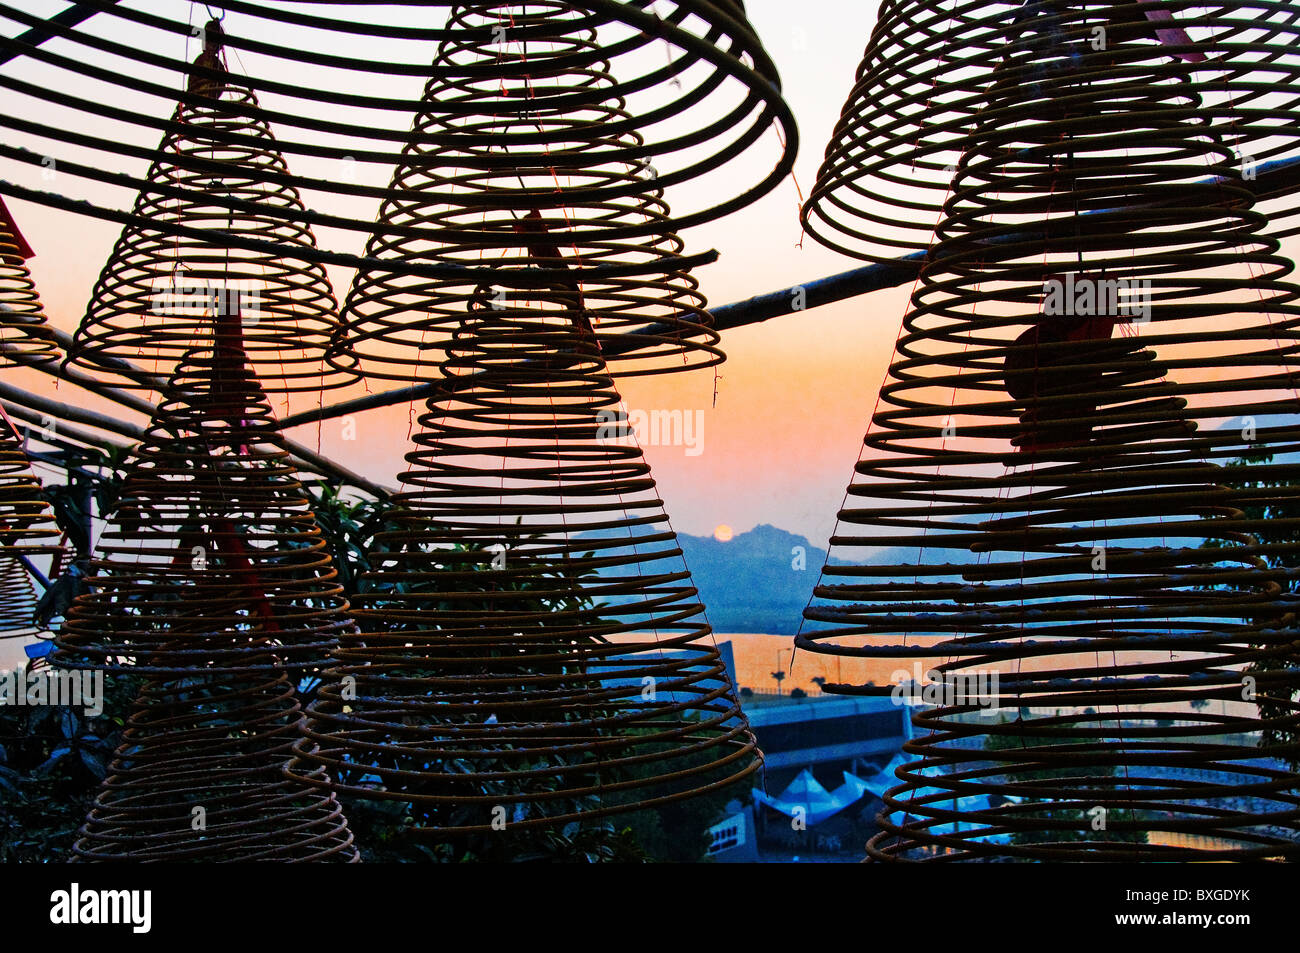 Incense coils in A Ma temple in Macau Hong Kong China Stock Photo